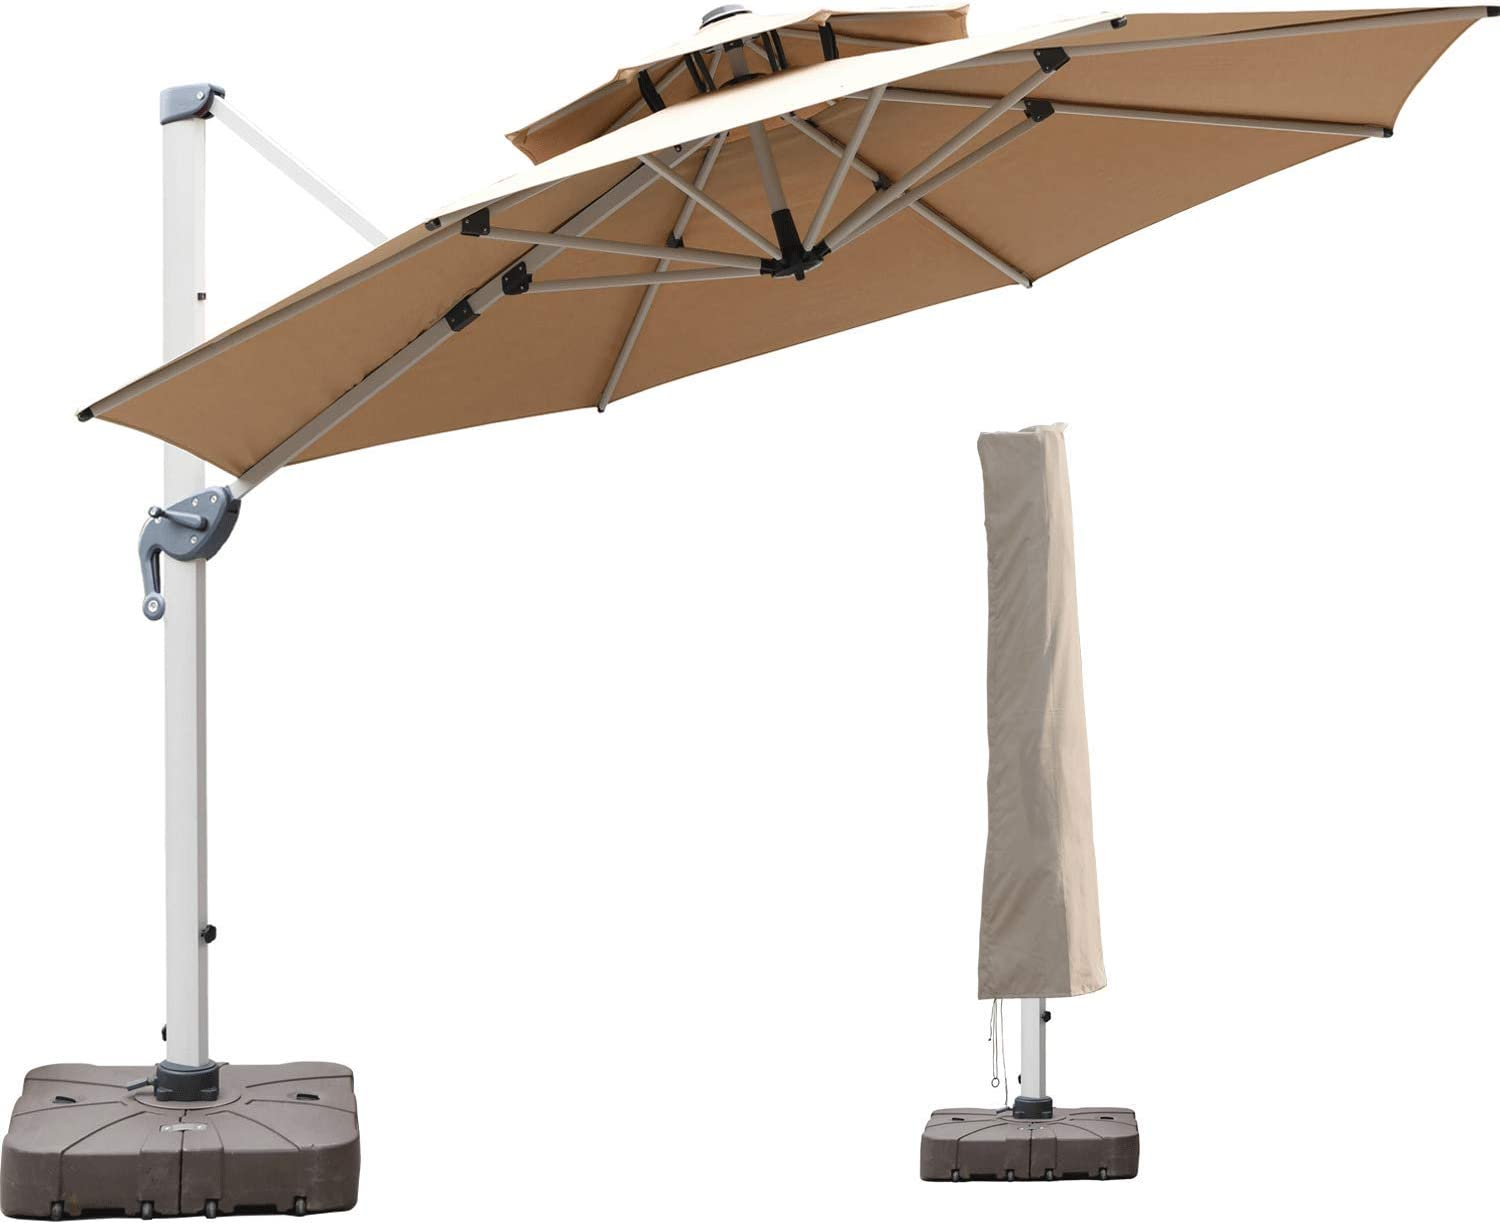 LKINBO 10 FT Offset Patio Washington Mall Credence Umbrella Cover with - 360 D Waterproof